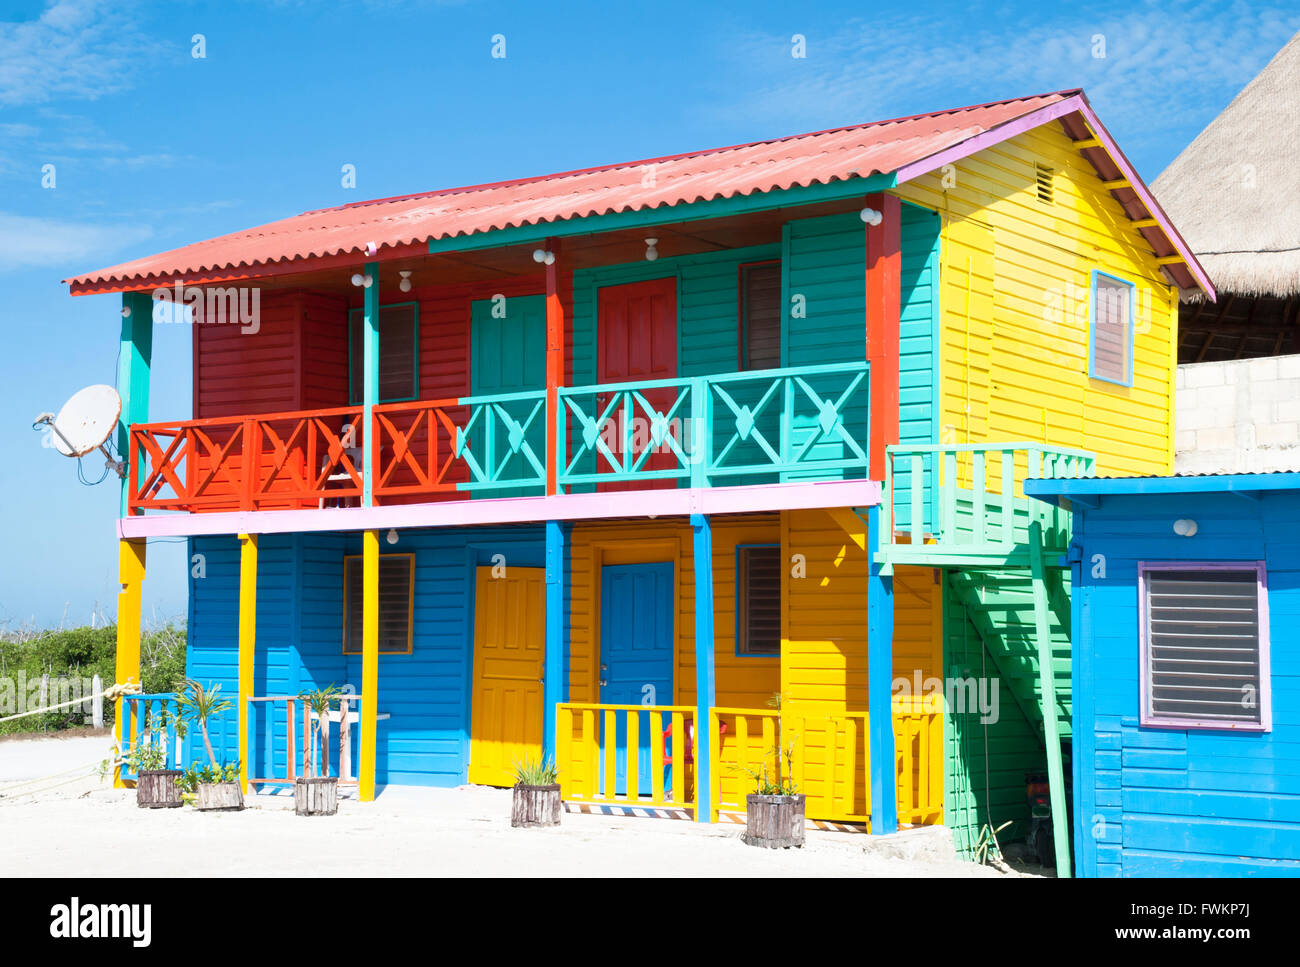 The Colorfully Painted House In Mexican Resort Town Mahahual Stock Photo Alamy